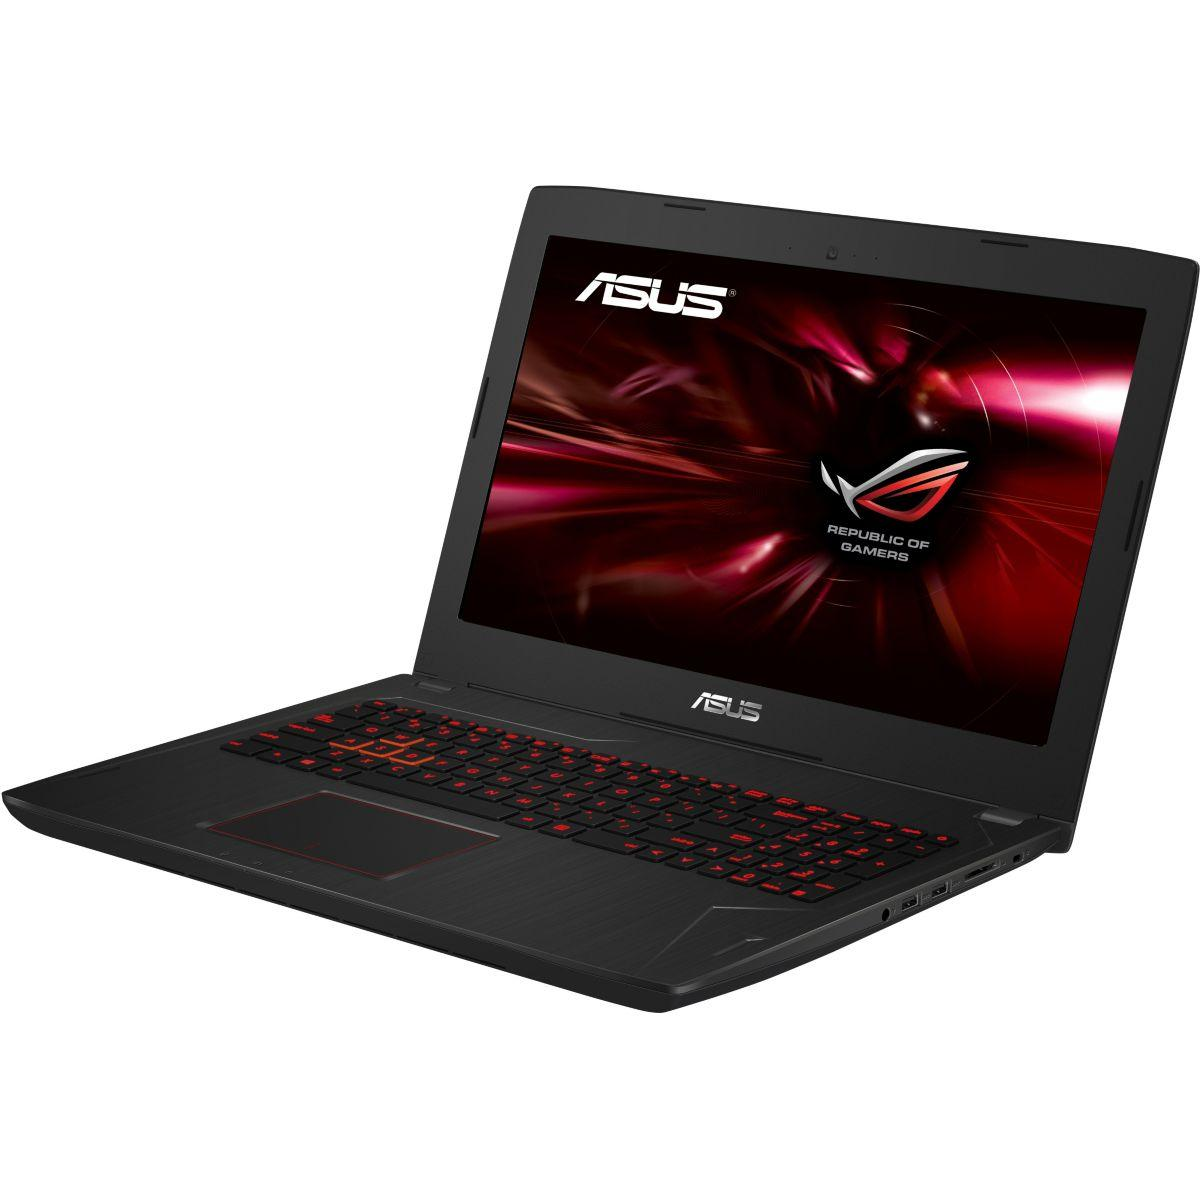 Pc portable gamer asus fx502vm-dm114t - coup de coeur de l'équipe (photo)